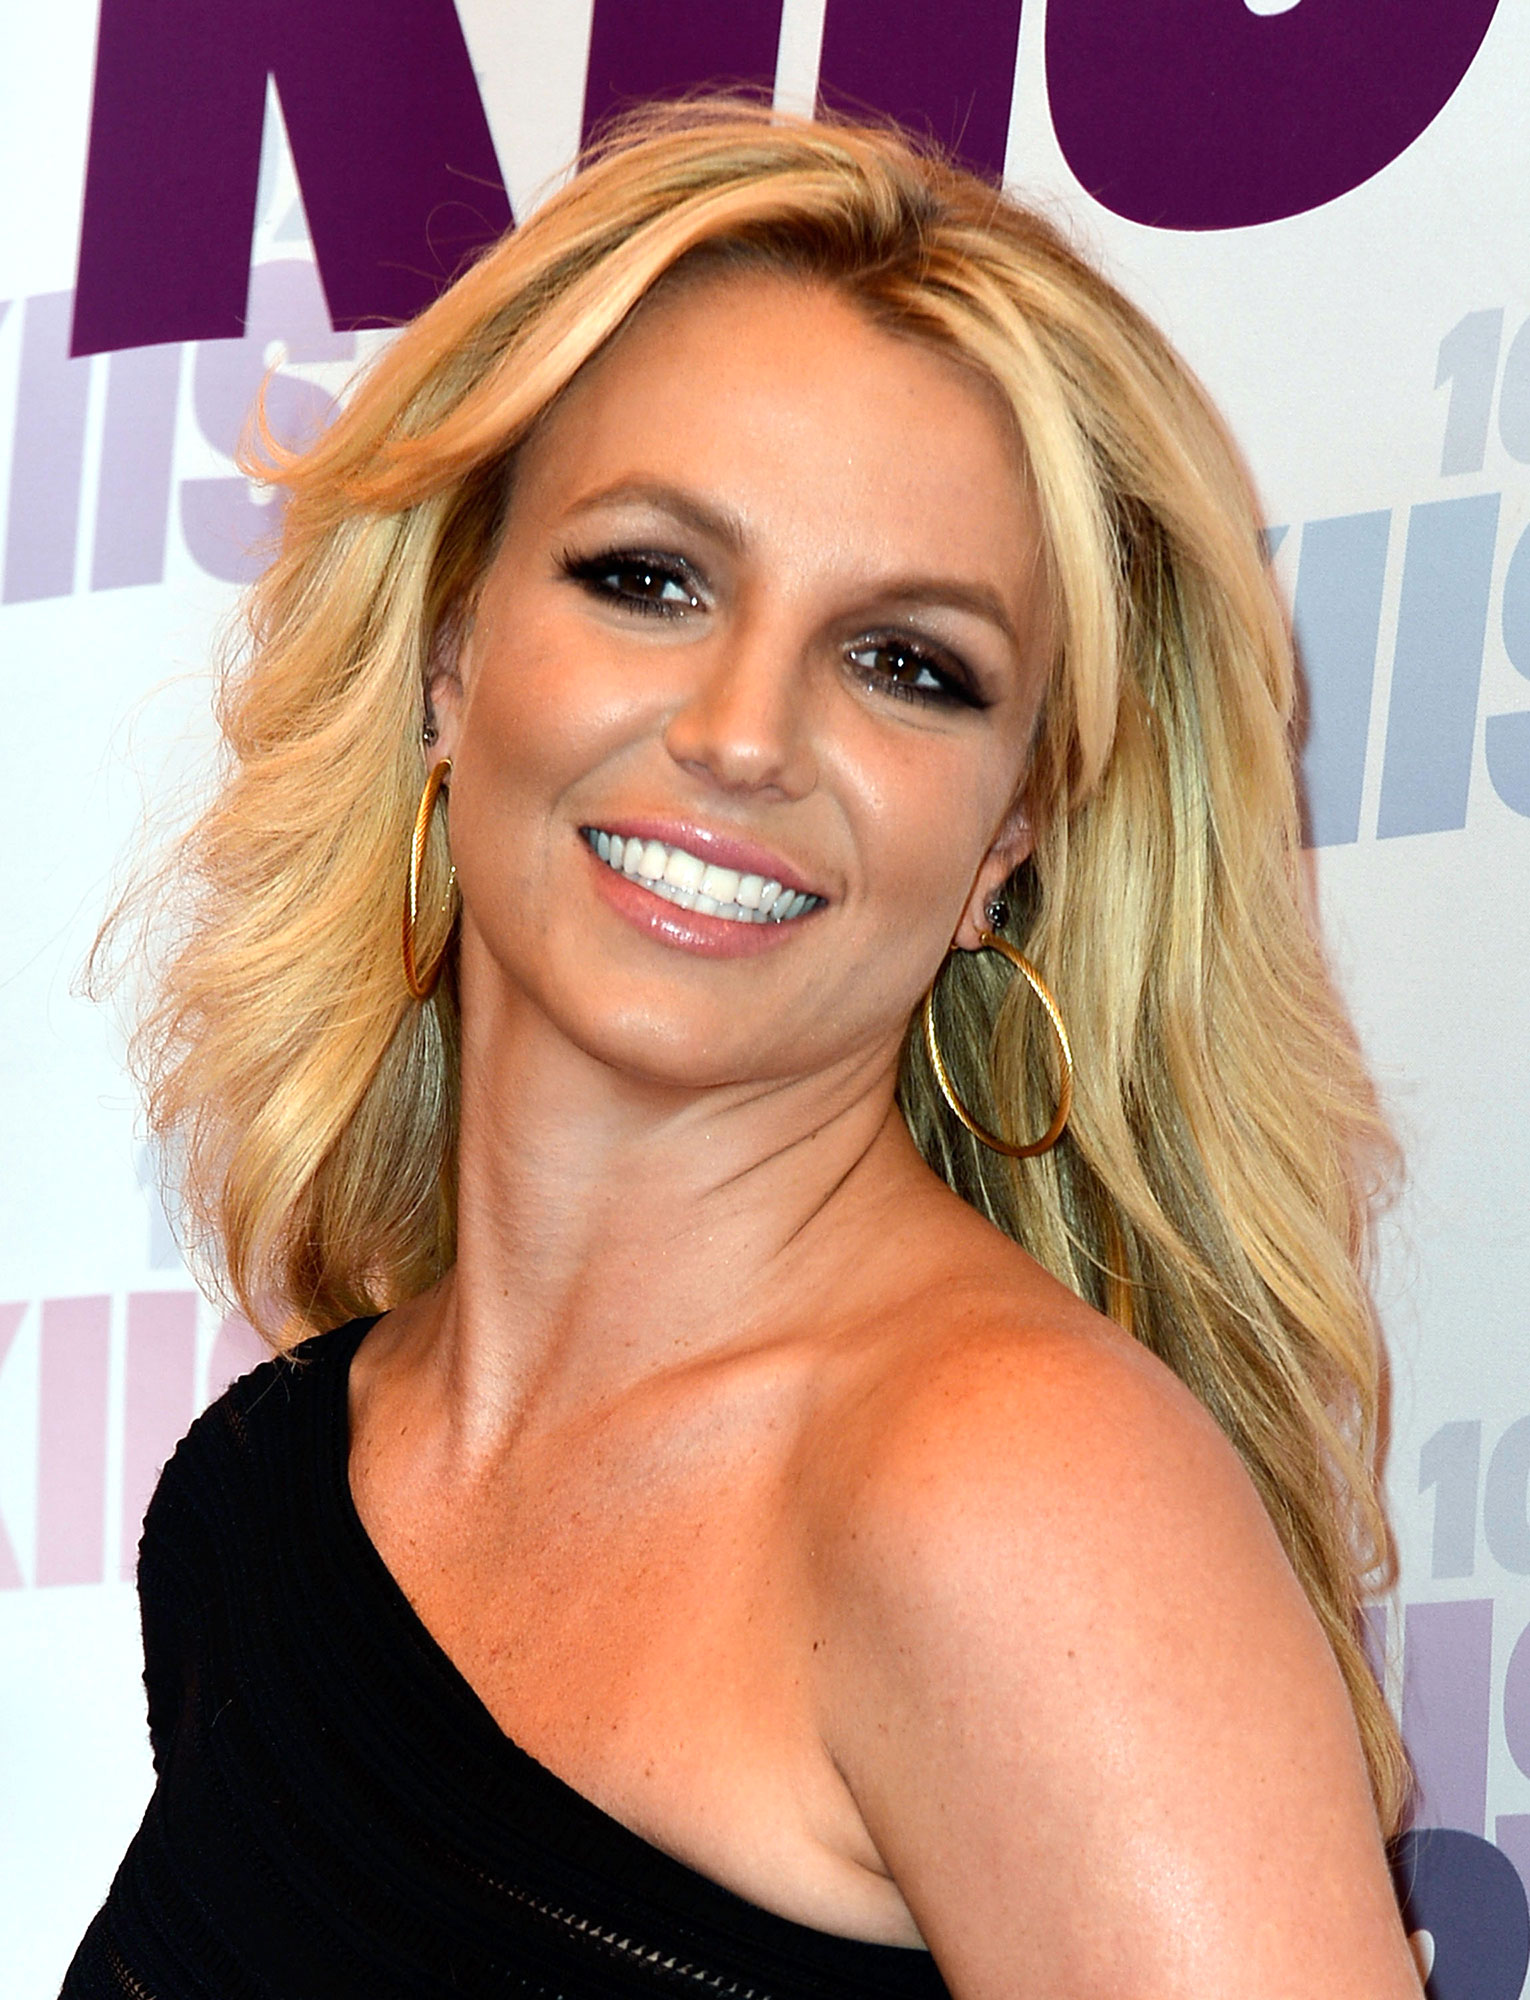 Britney Spears' Ups and Downs gallery - In early 2008, Spears was hospitalized and under evaluation for 72 hours, also known as a 5150 hold. The performer's father, Jamie, was also named her conservator.